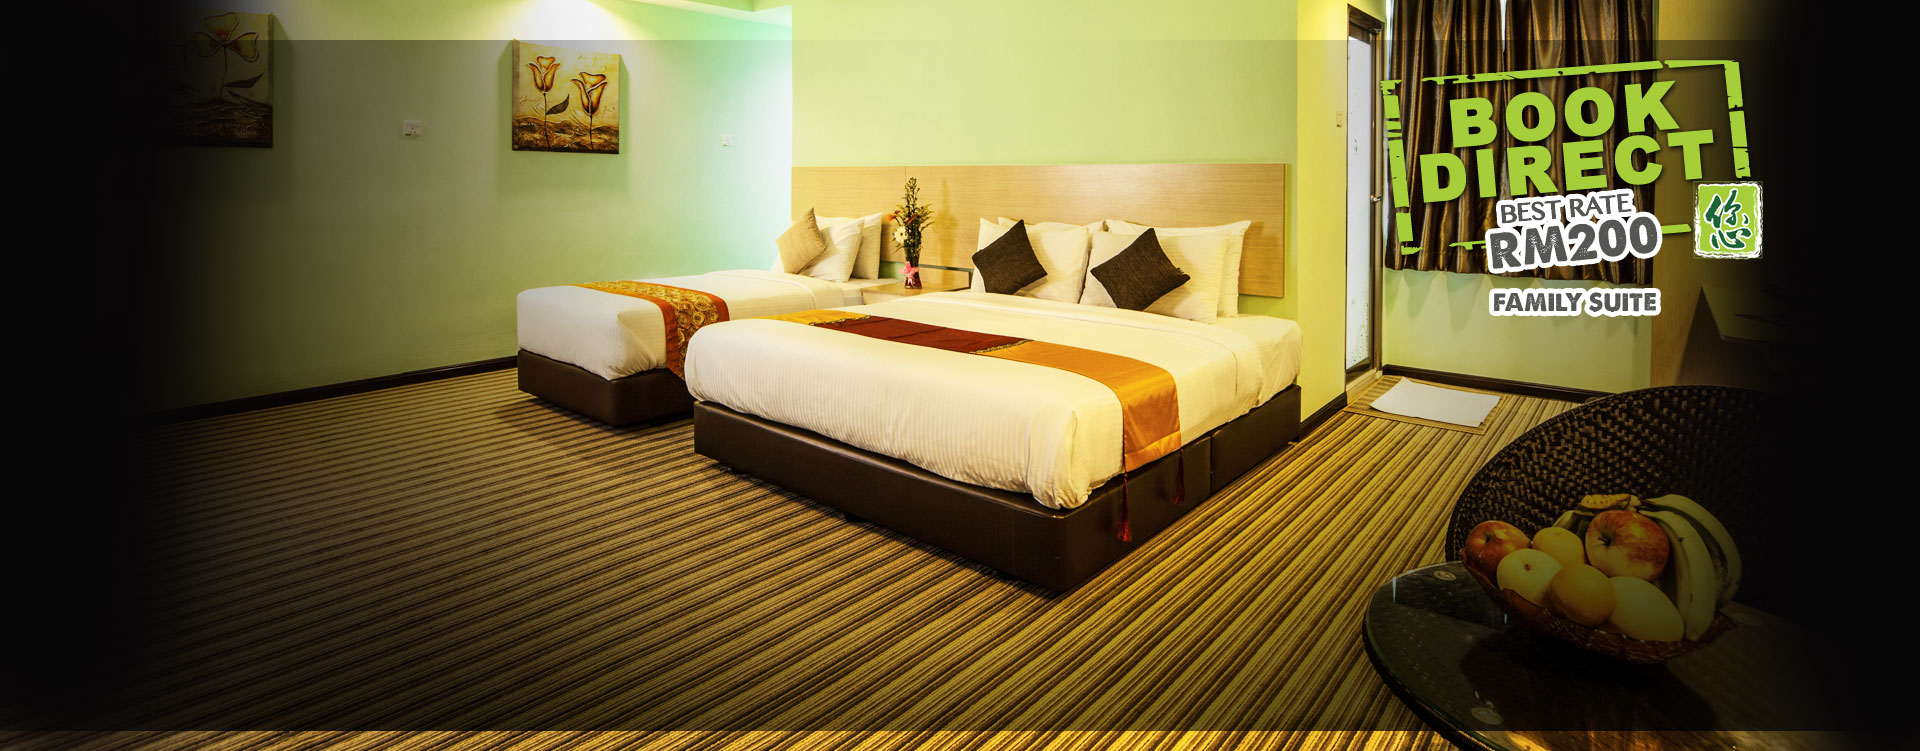 Thy Executive Hotel Family Suite at RM200